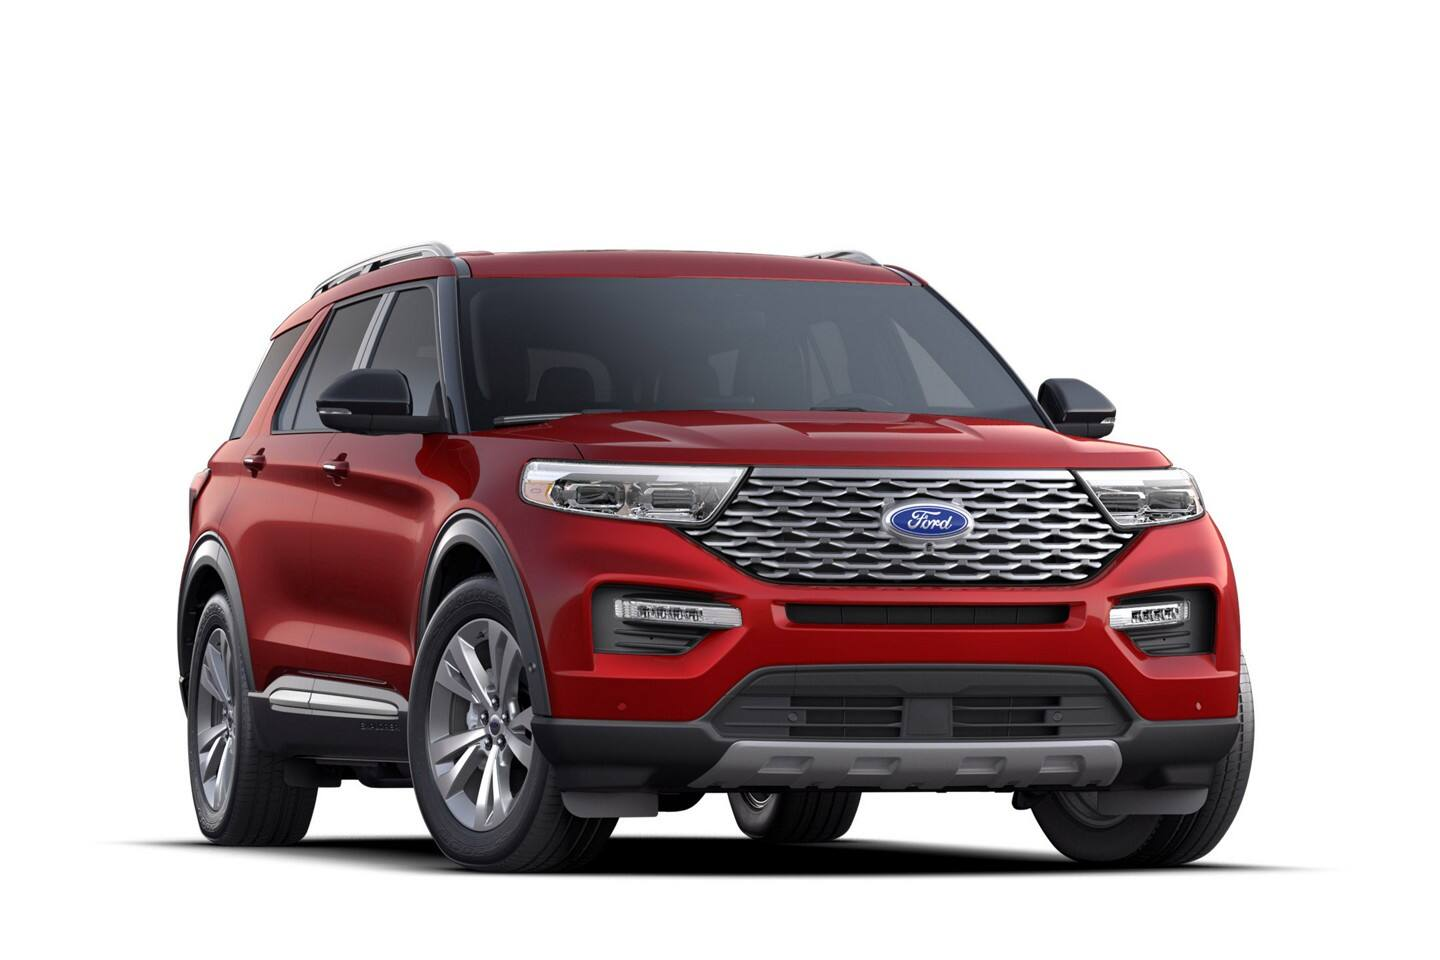 45 Best Review When Will 2020 Ford Explorer Be Available Picture for When Will 2020 Ford Explorer Be Available